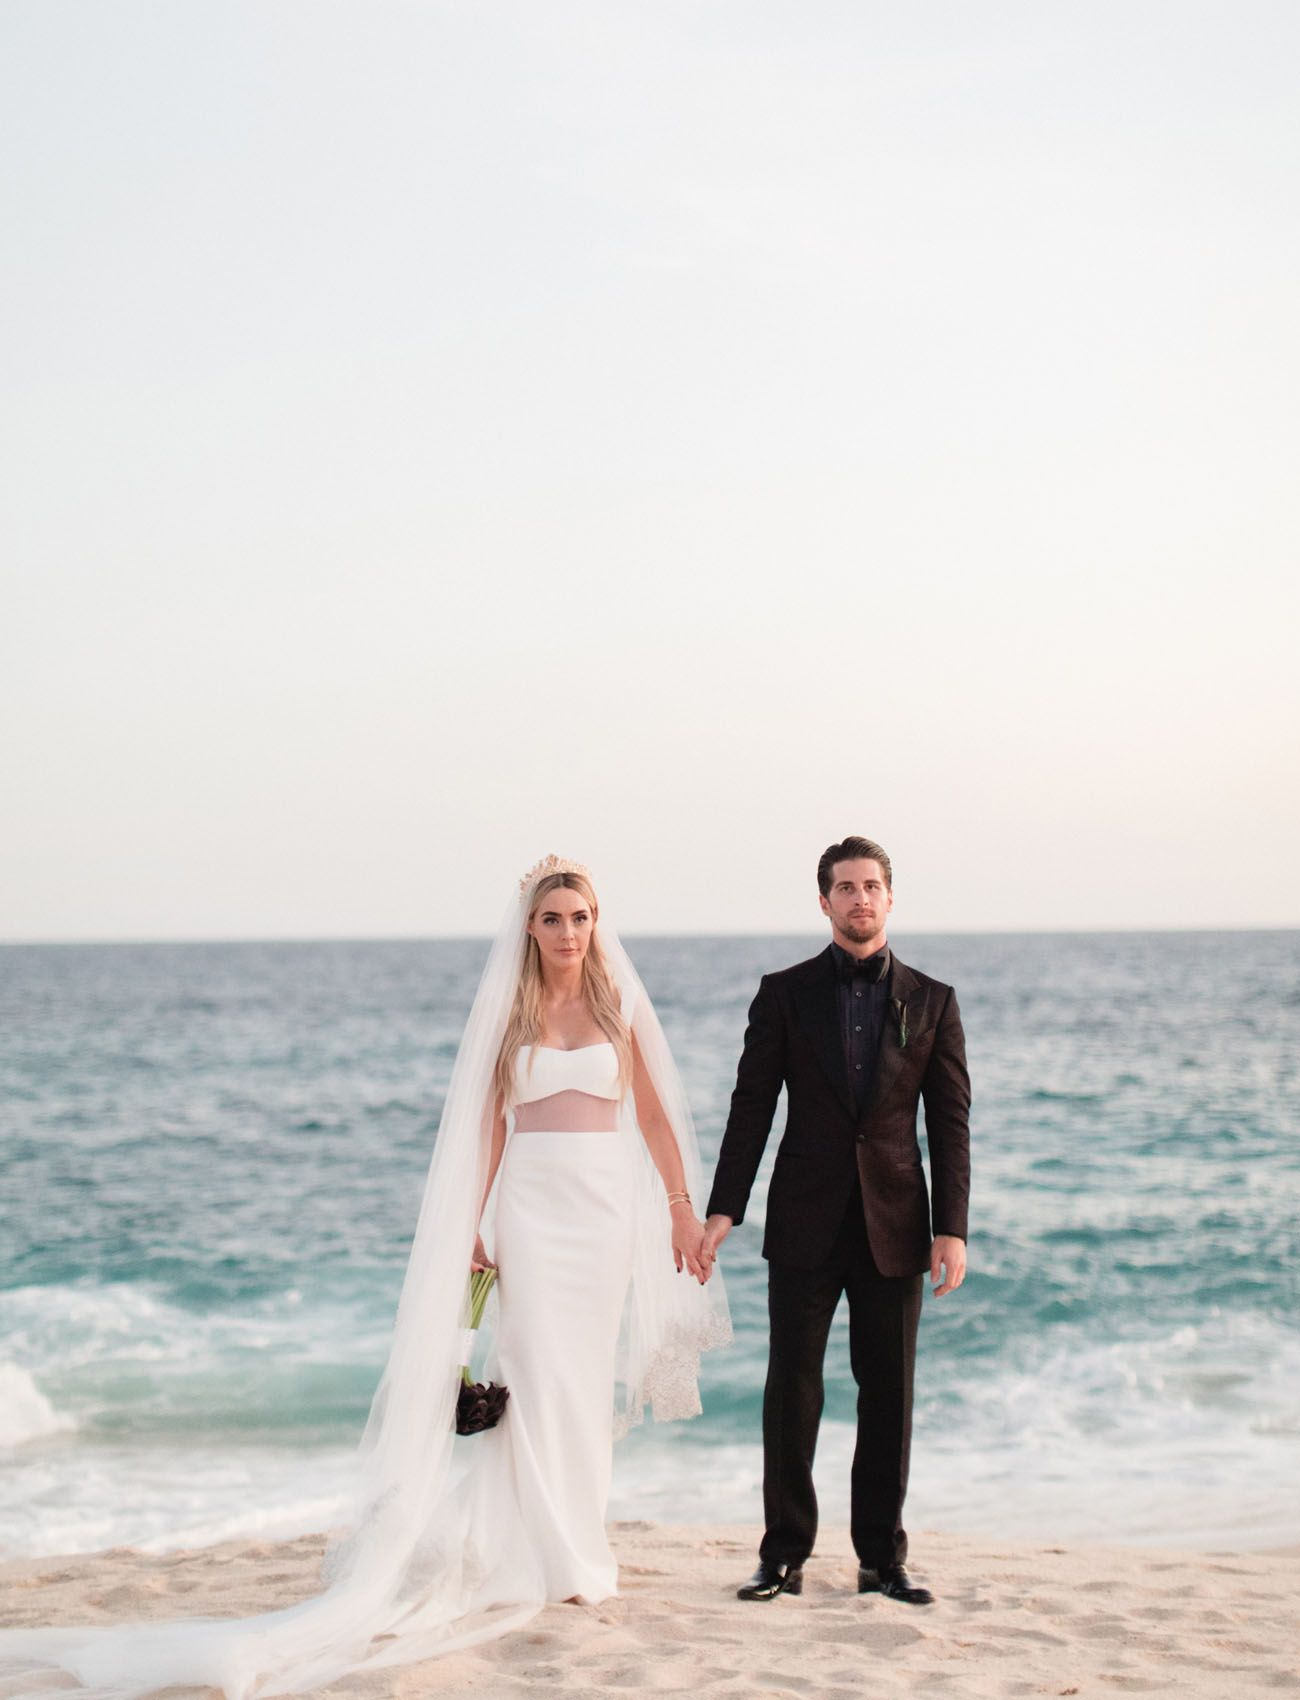 ccca607e840b The Skinny Confidential Wedding bold and dramatic wedding in cabo beach  portraits